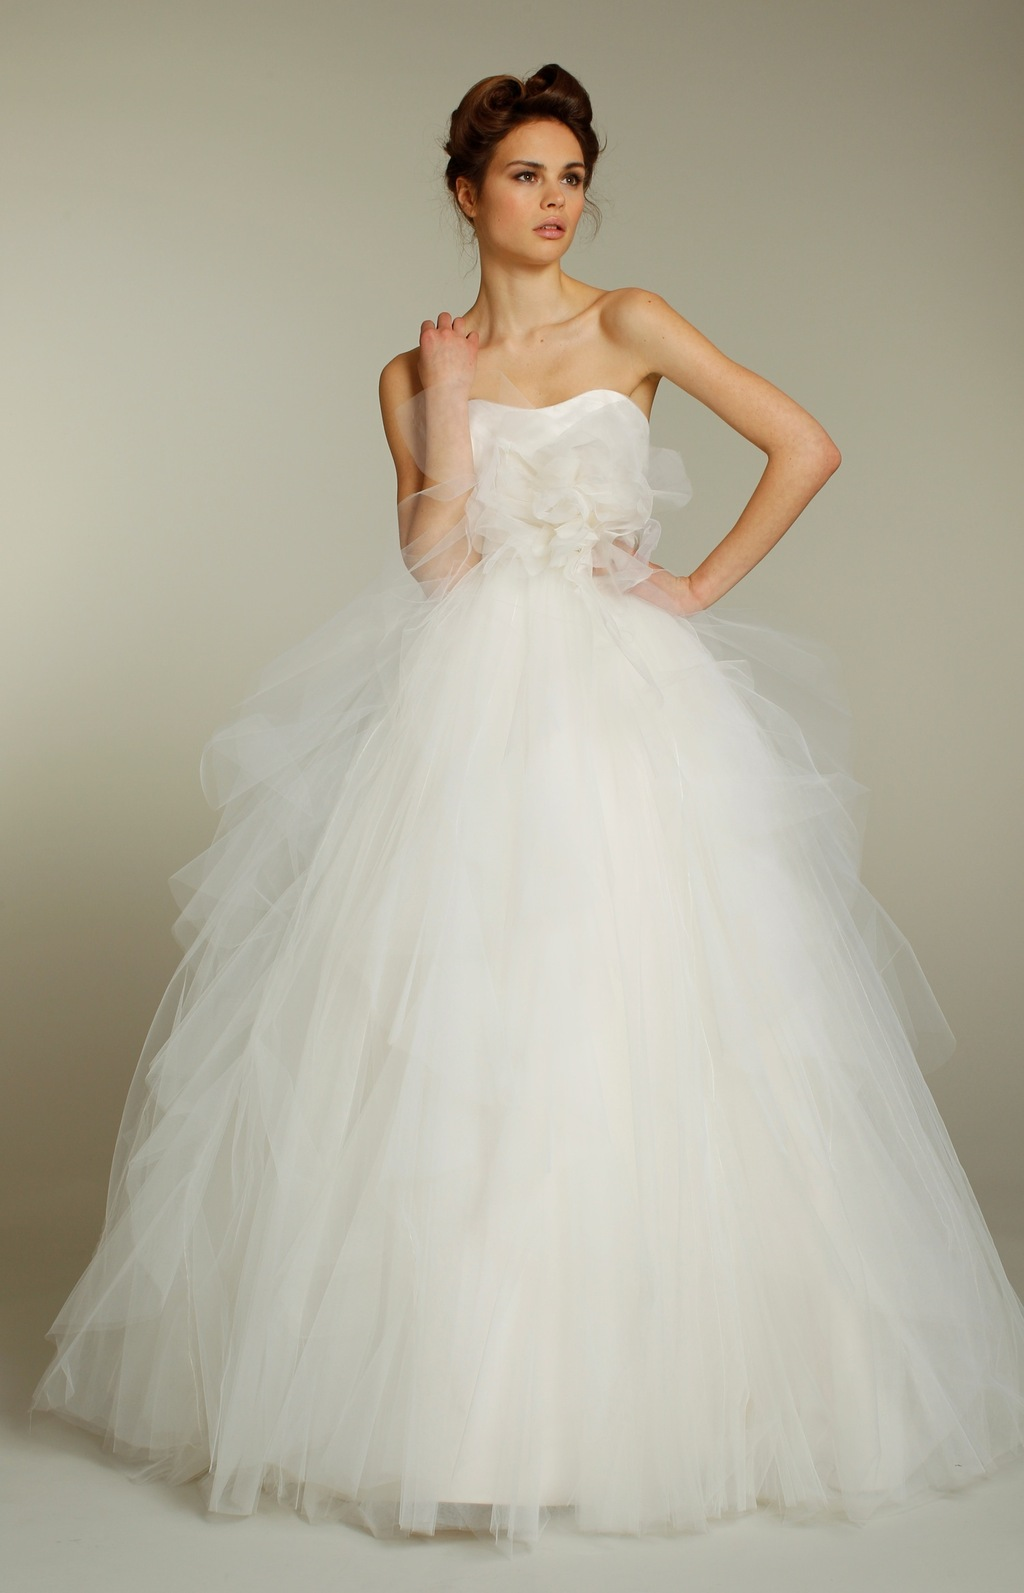 empire tea length strapless ivory ball gown tulle wedding dress lace bolero strapless tulle wedding dress strapless ivory ball gown tulle wedding dress lace bolero